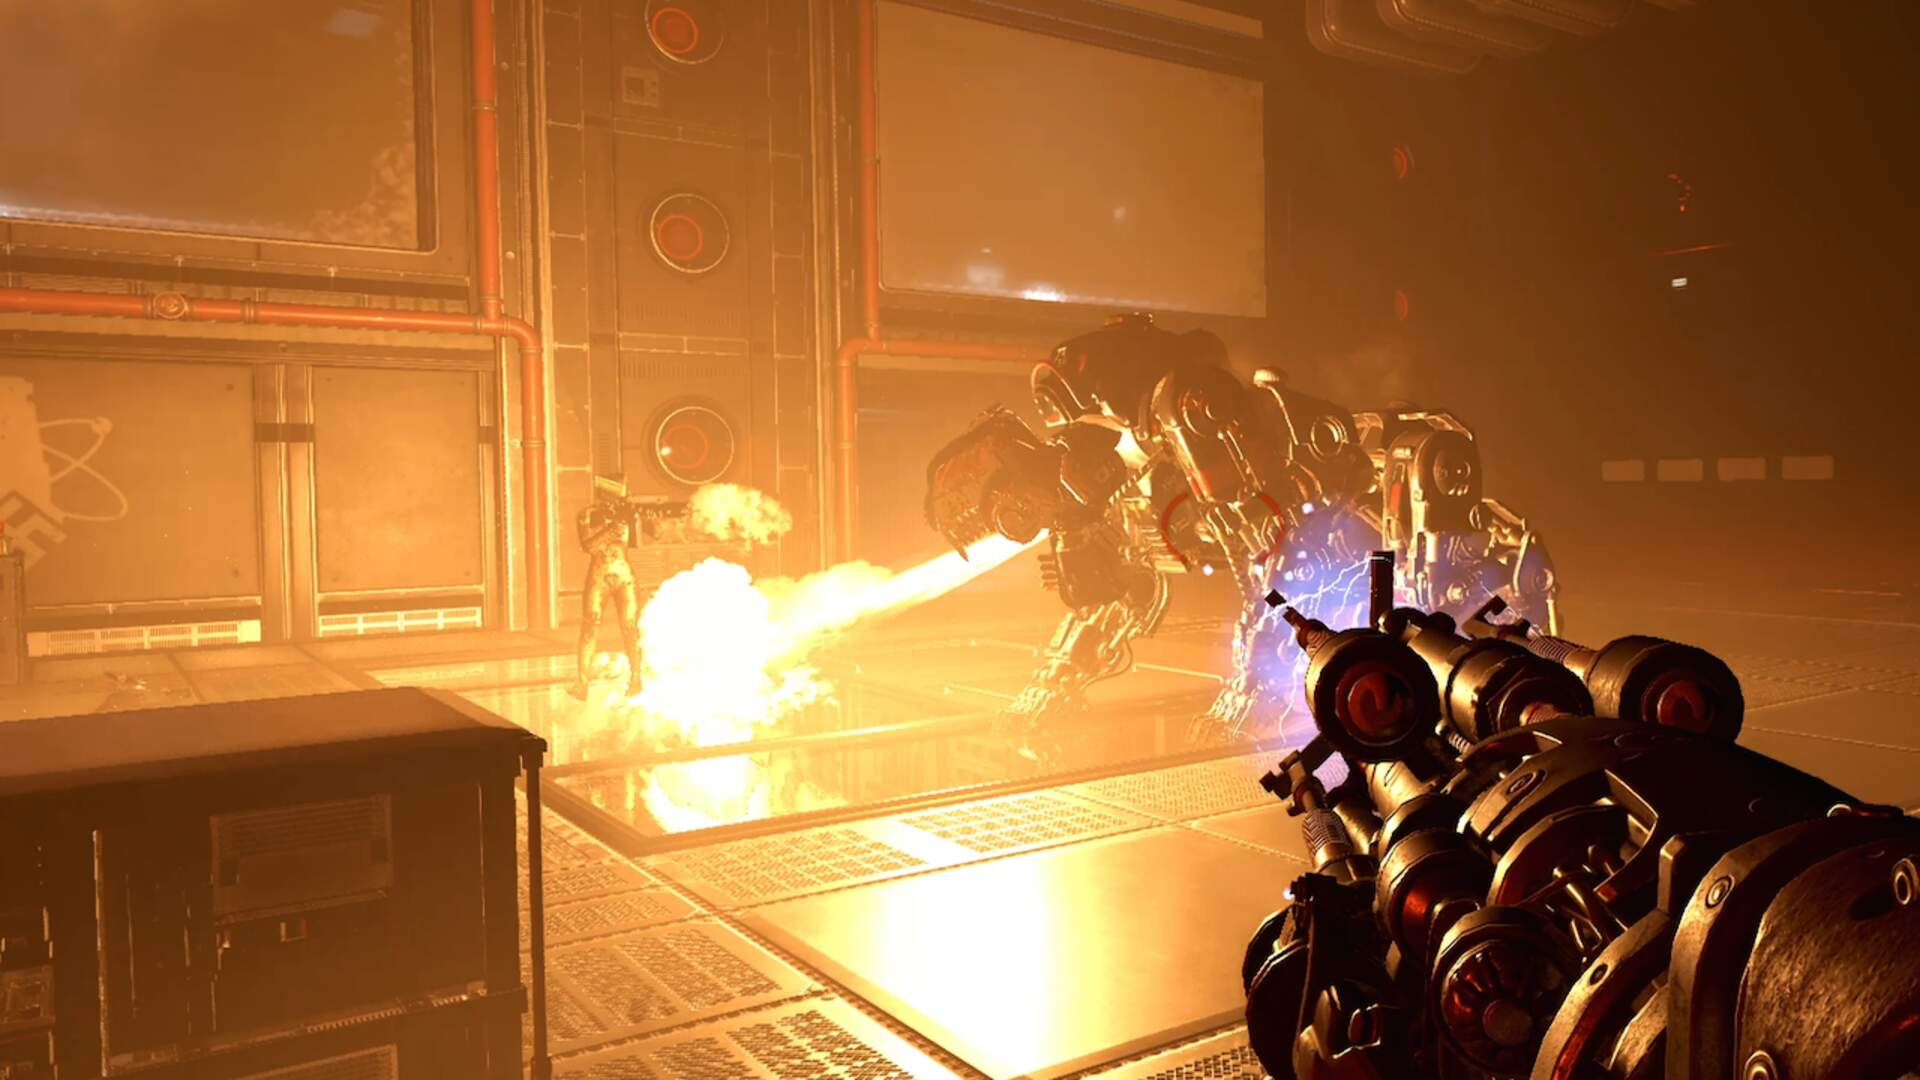 Wolfenstein: Youngblood's New Ray Tracing Update Shows Off Some Next-Gen Tricks